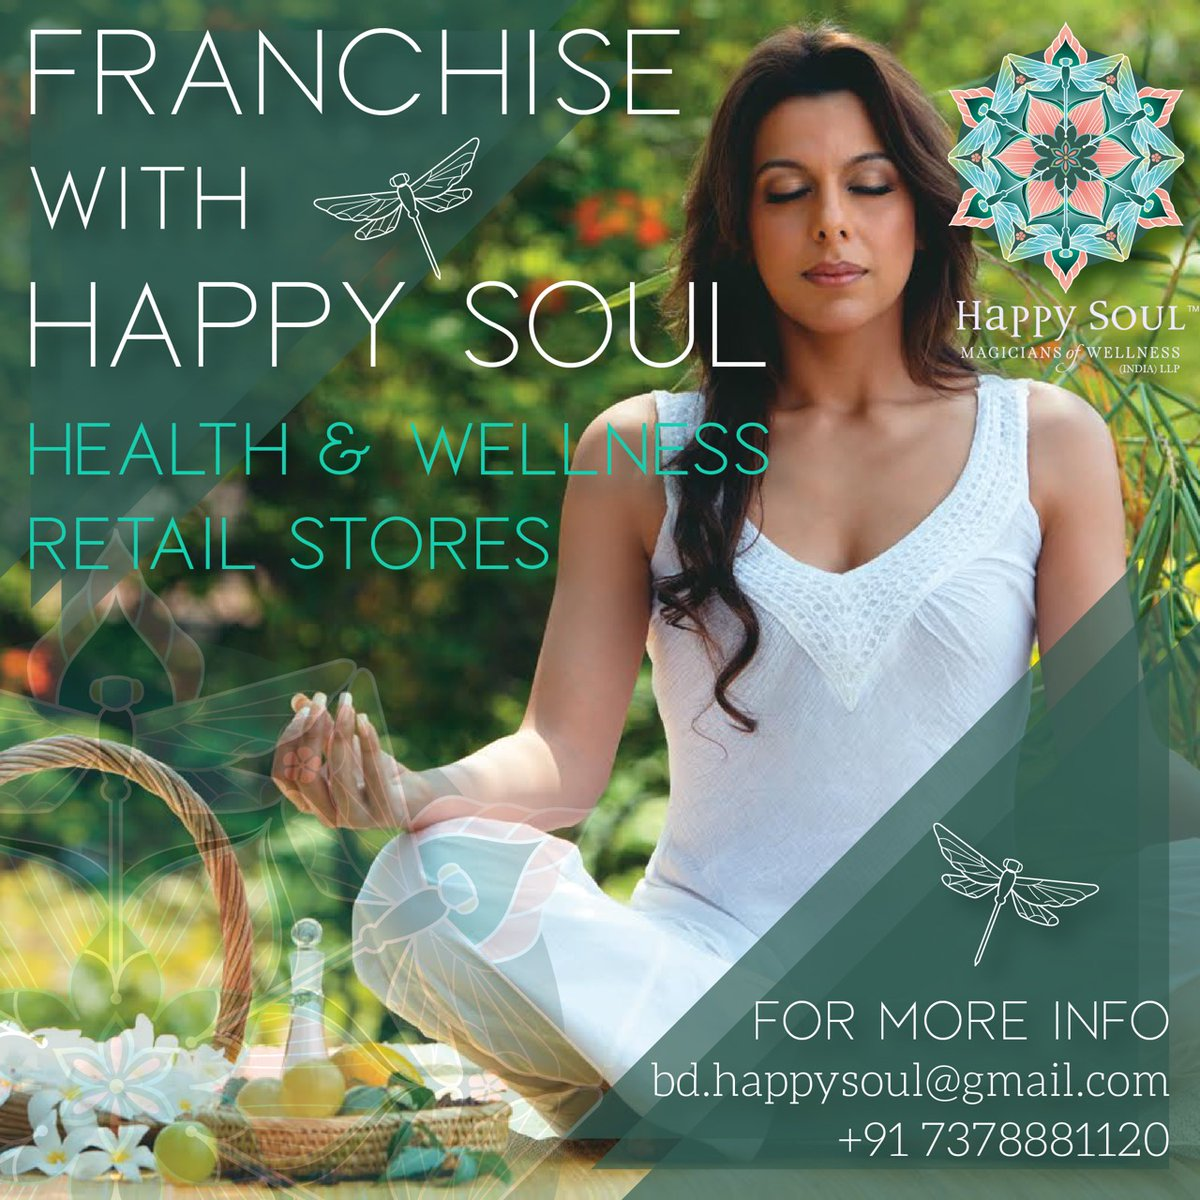 Delighted 2 share that my brand #happysoul has signed a 50 store franchise deal for our health & wellness retail stores across India. If YOU would like to b our franchisee❤ contact details are on the pic!!  @happysoulindia #happysoulmoment #happysoullifestyle #happysoulwellness